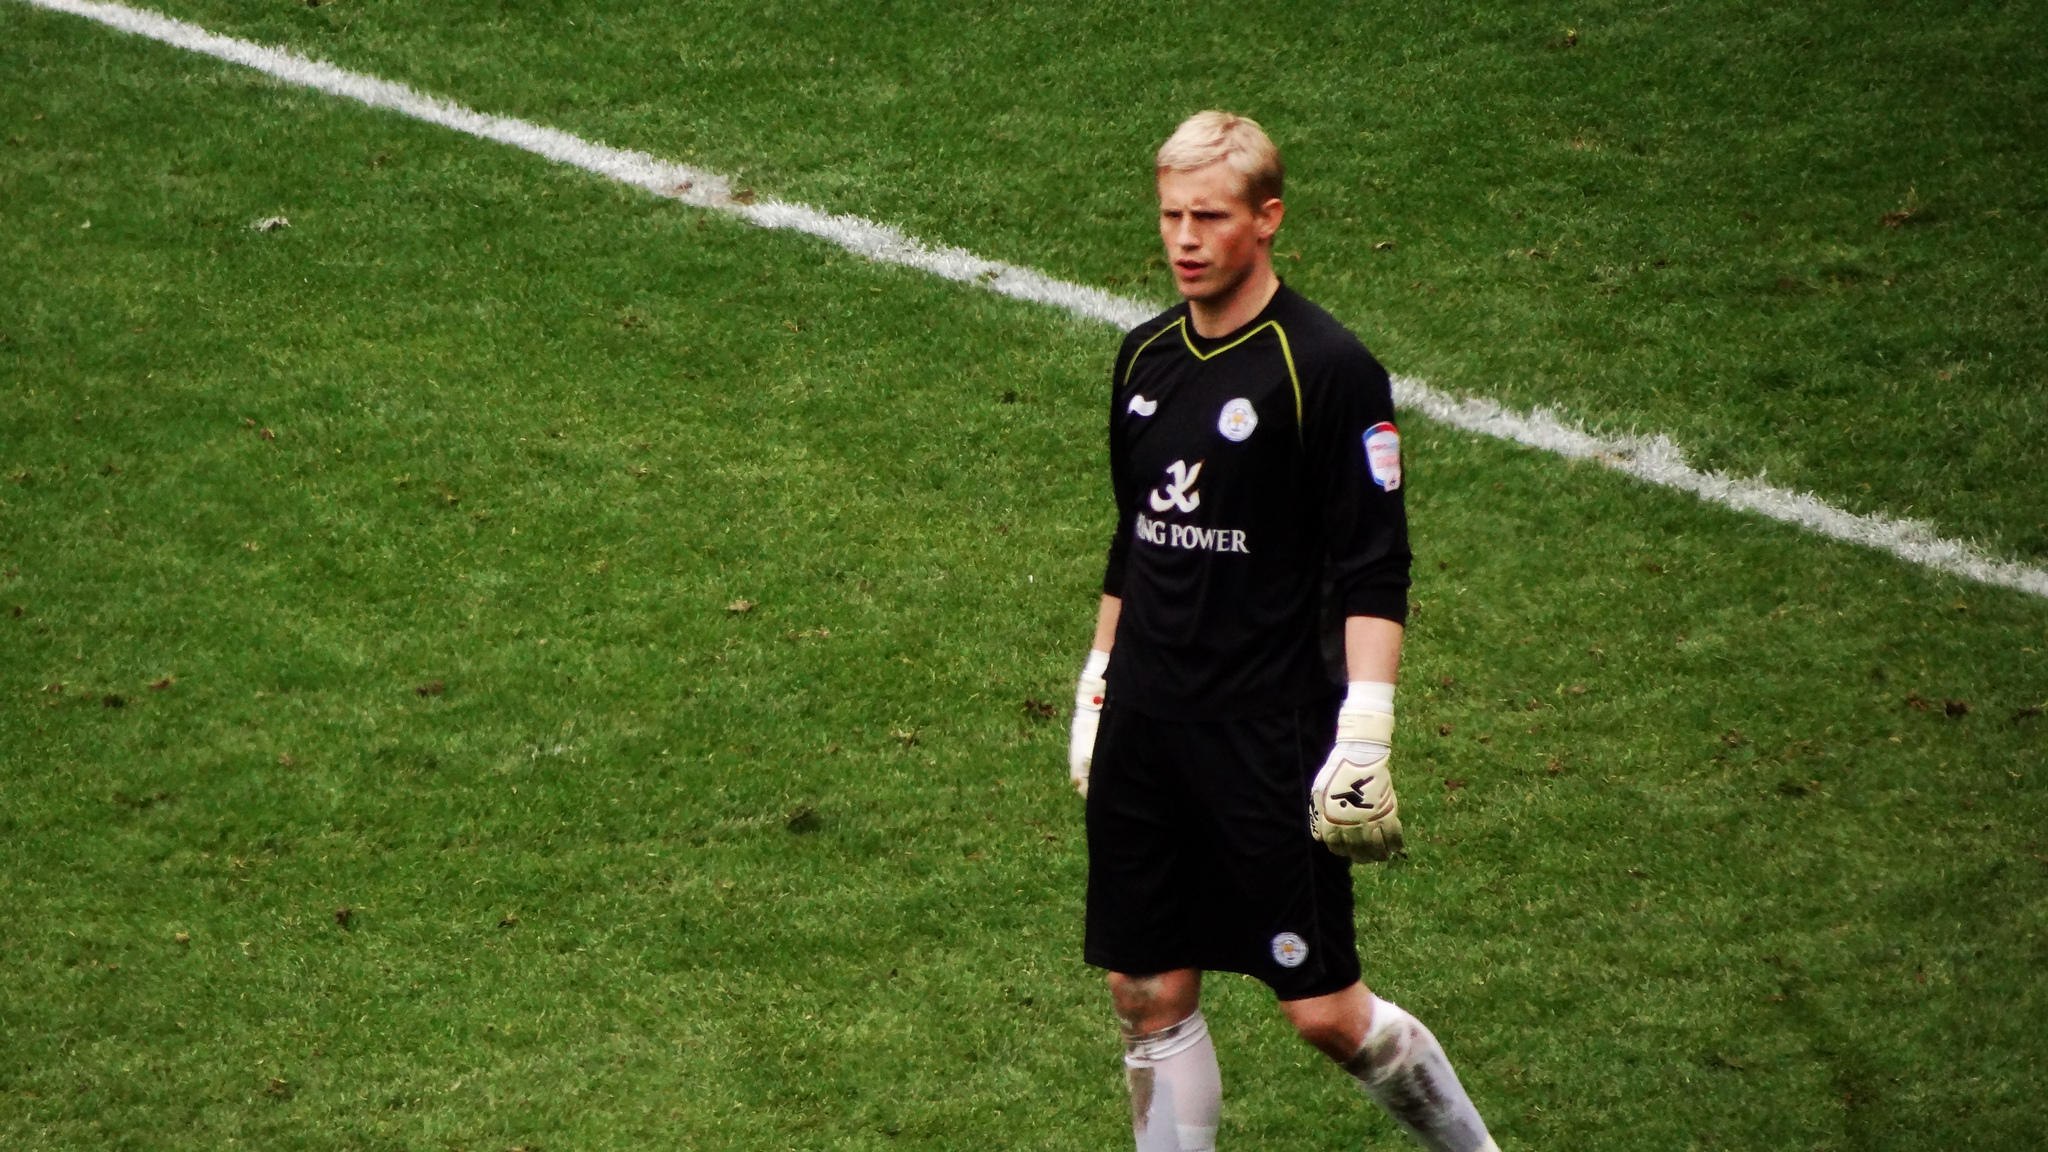 Schmeichel: Up there with the best goalkeepers the club has ever had